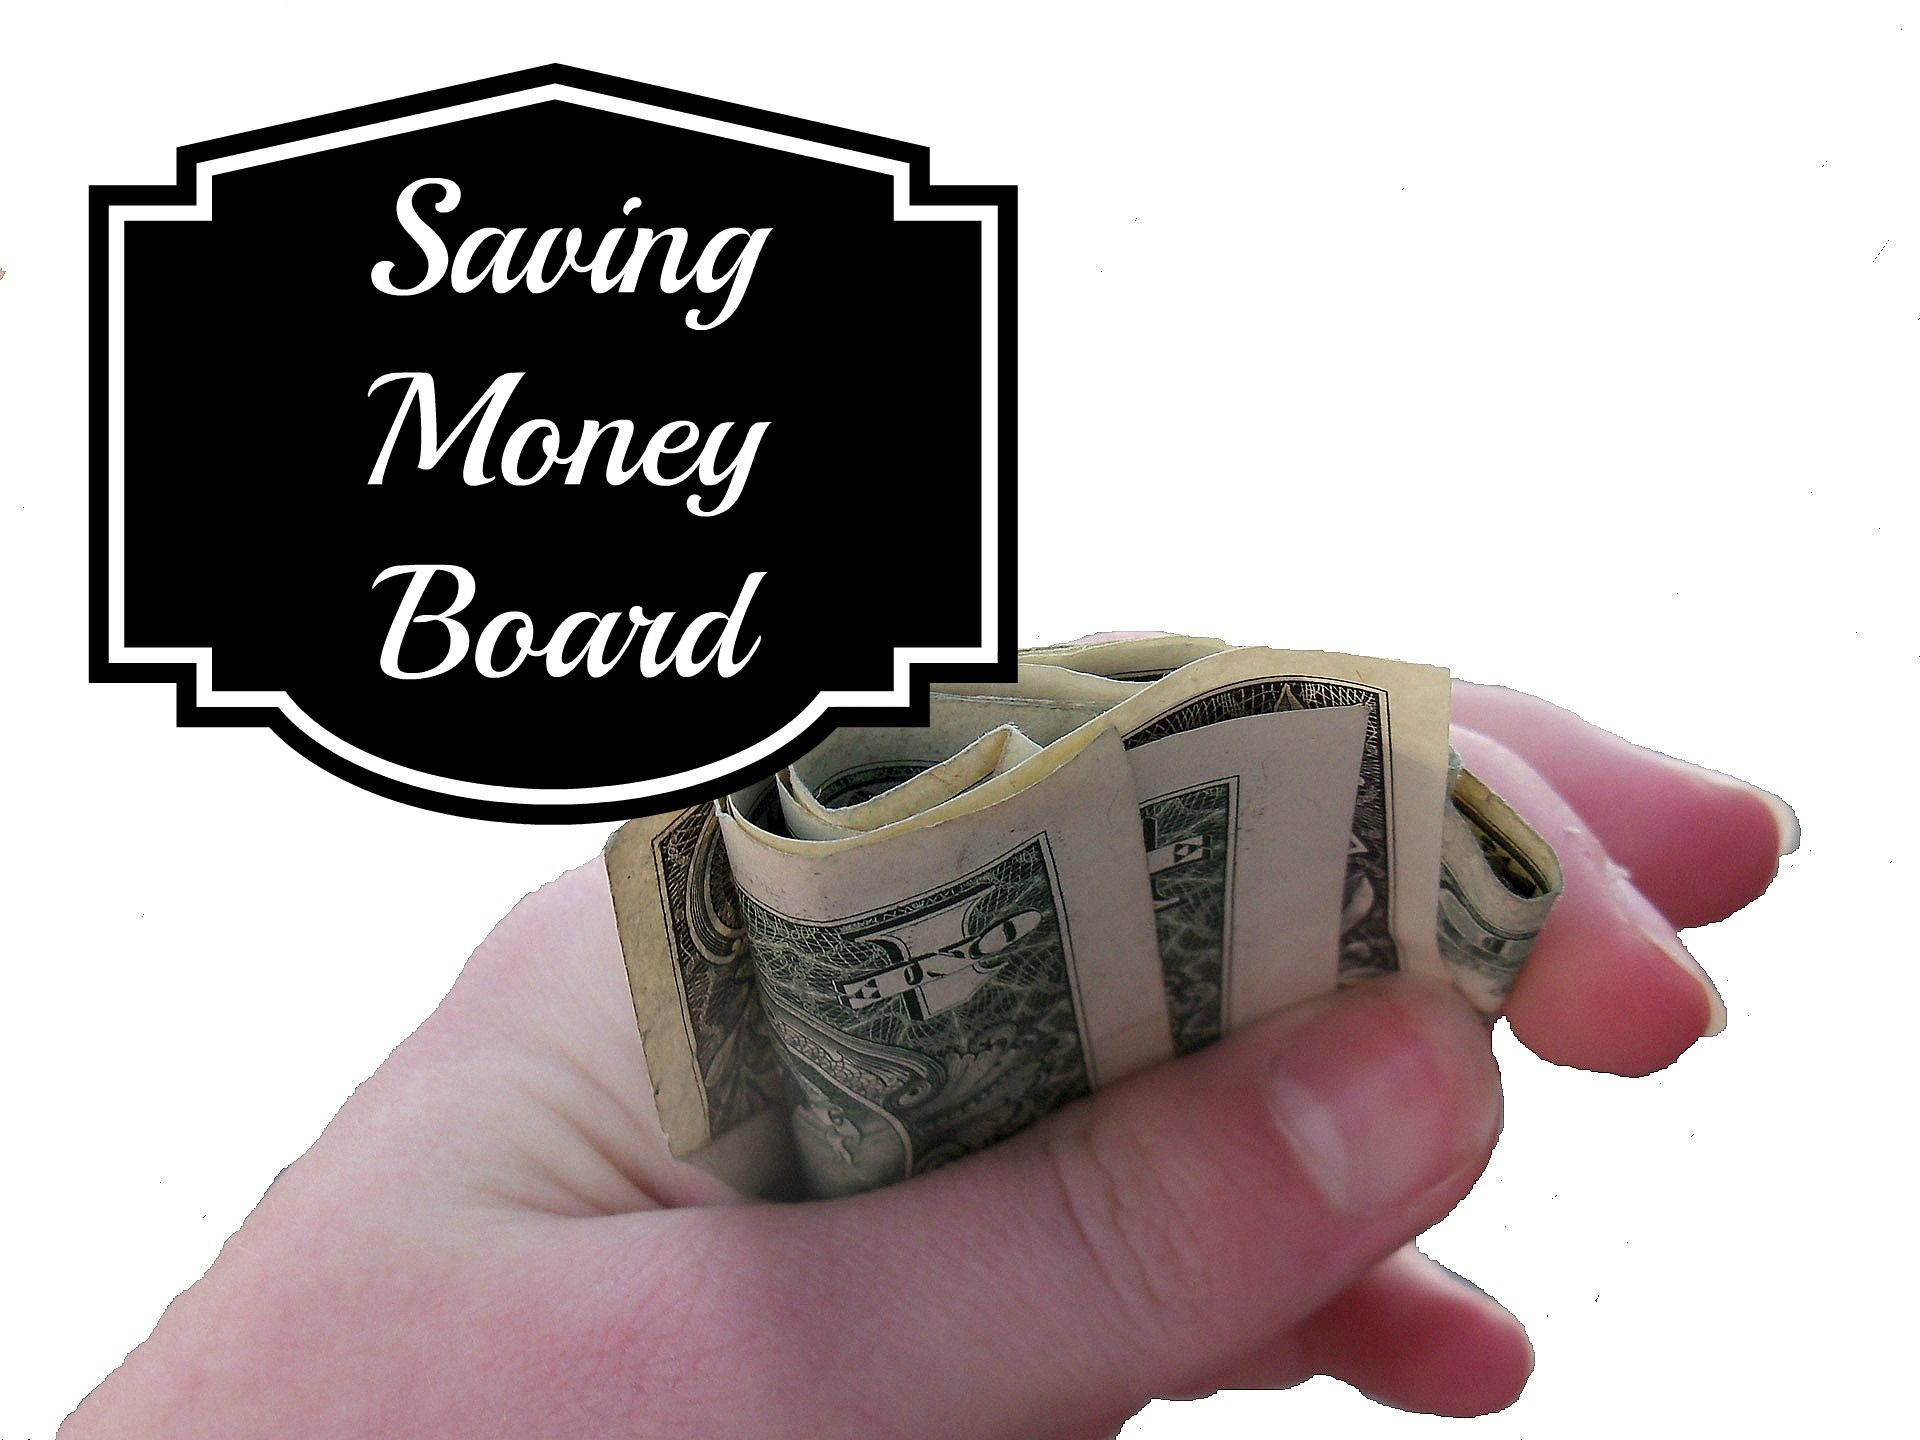 Tips on ways to save money through couponing, tutorials, & other interesting info